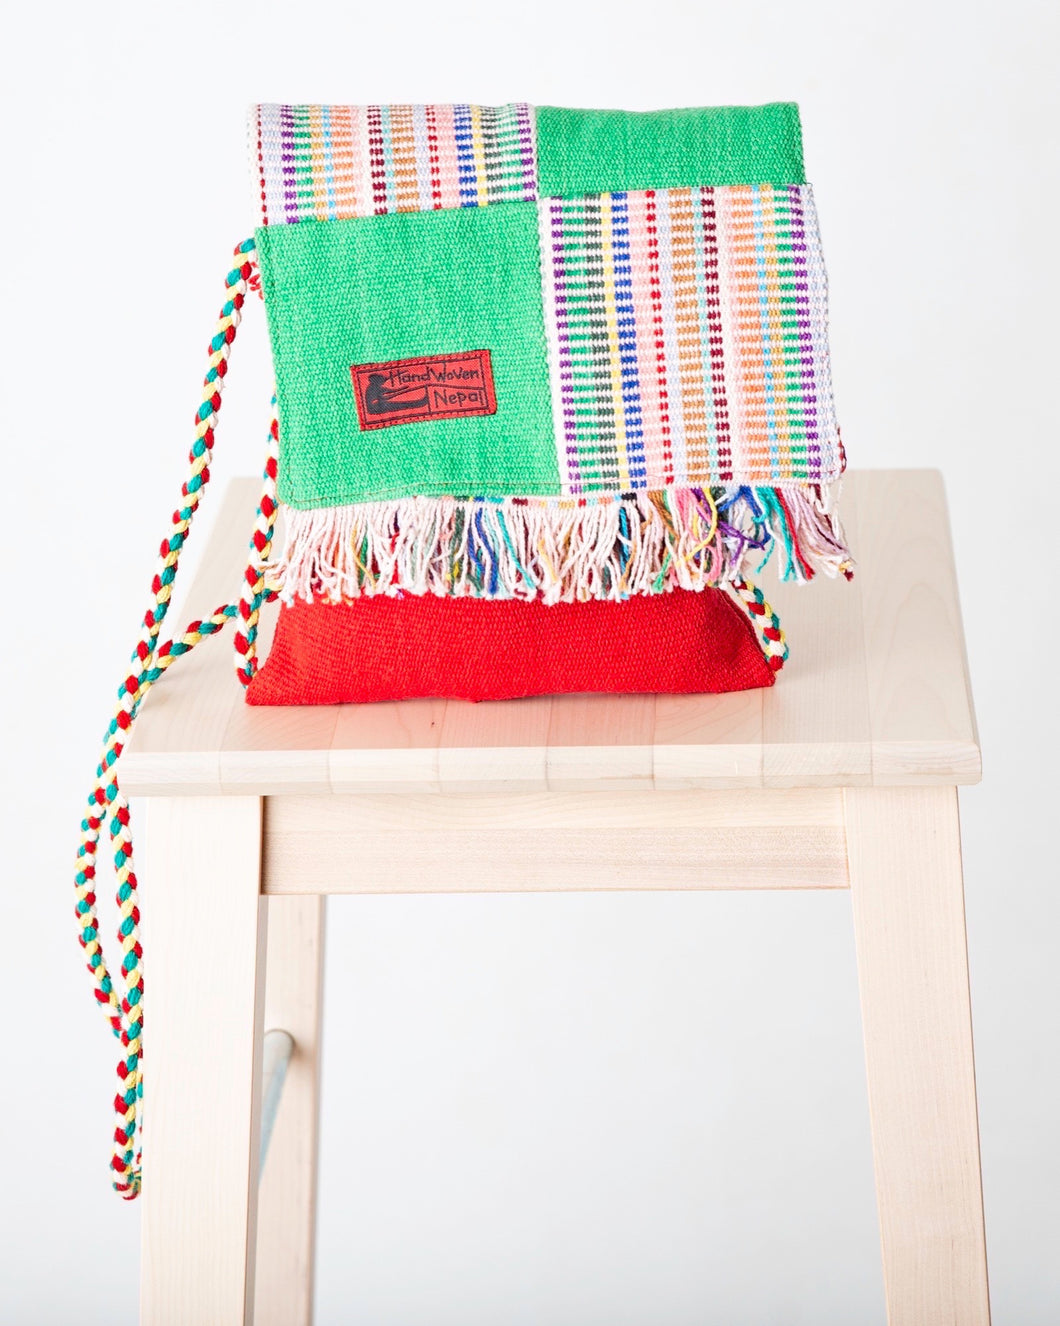 The Emma side fringe bag